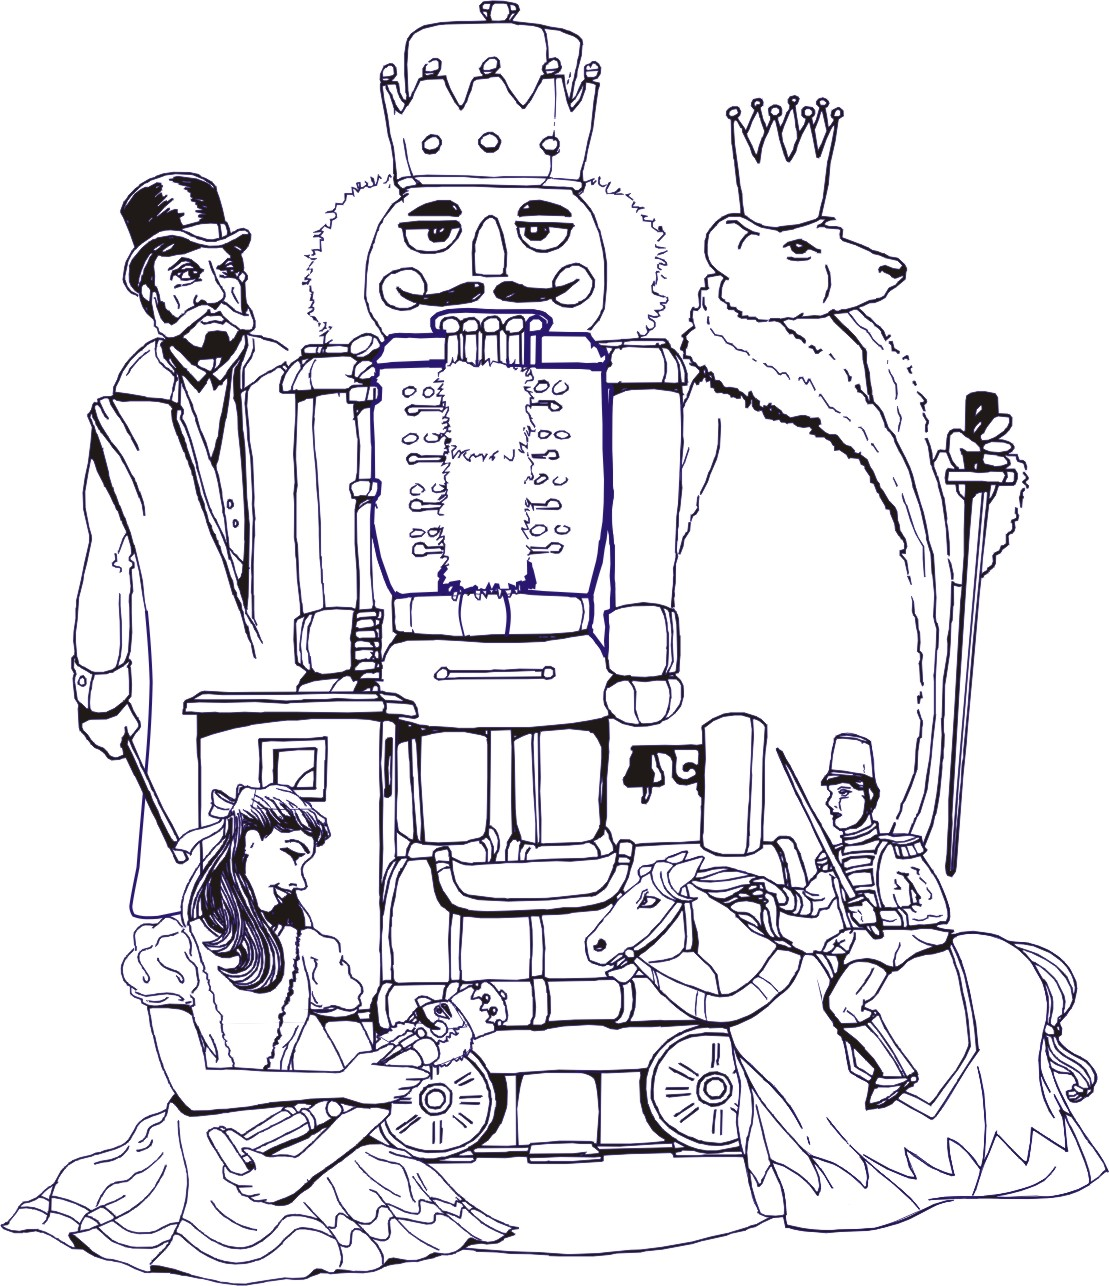 Action Beauty The Nutcracker Coloring Pages Images best kids fun page images